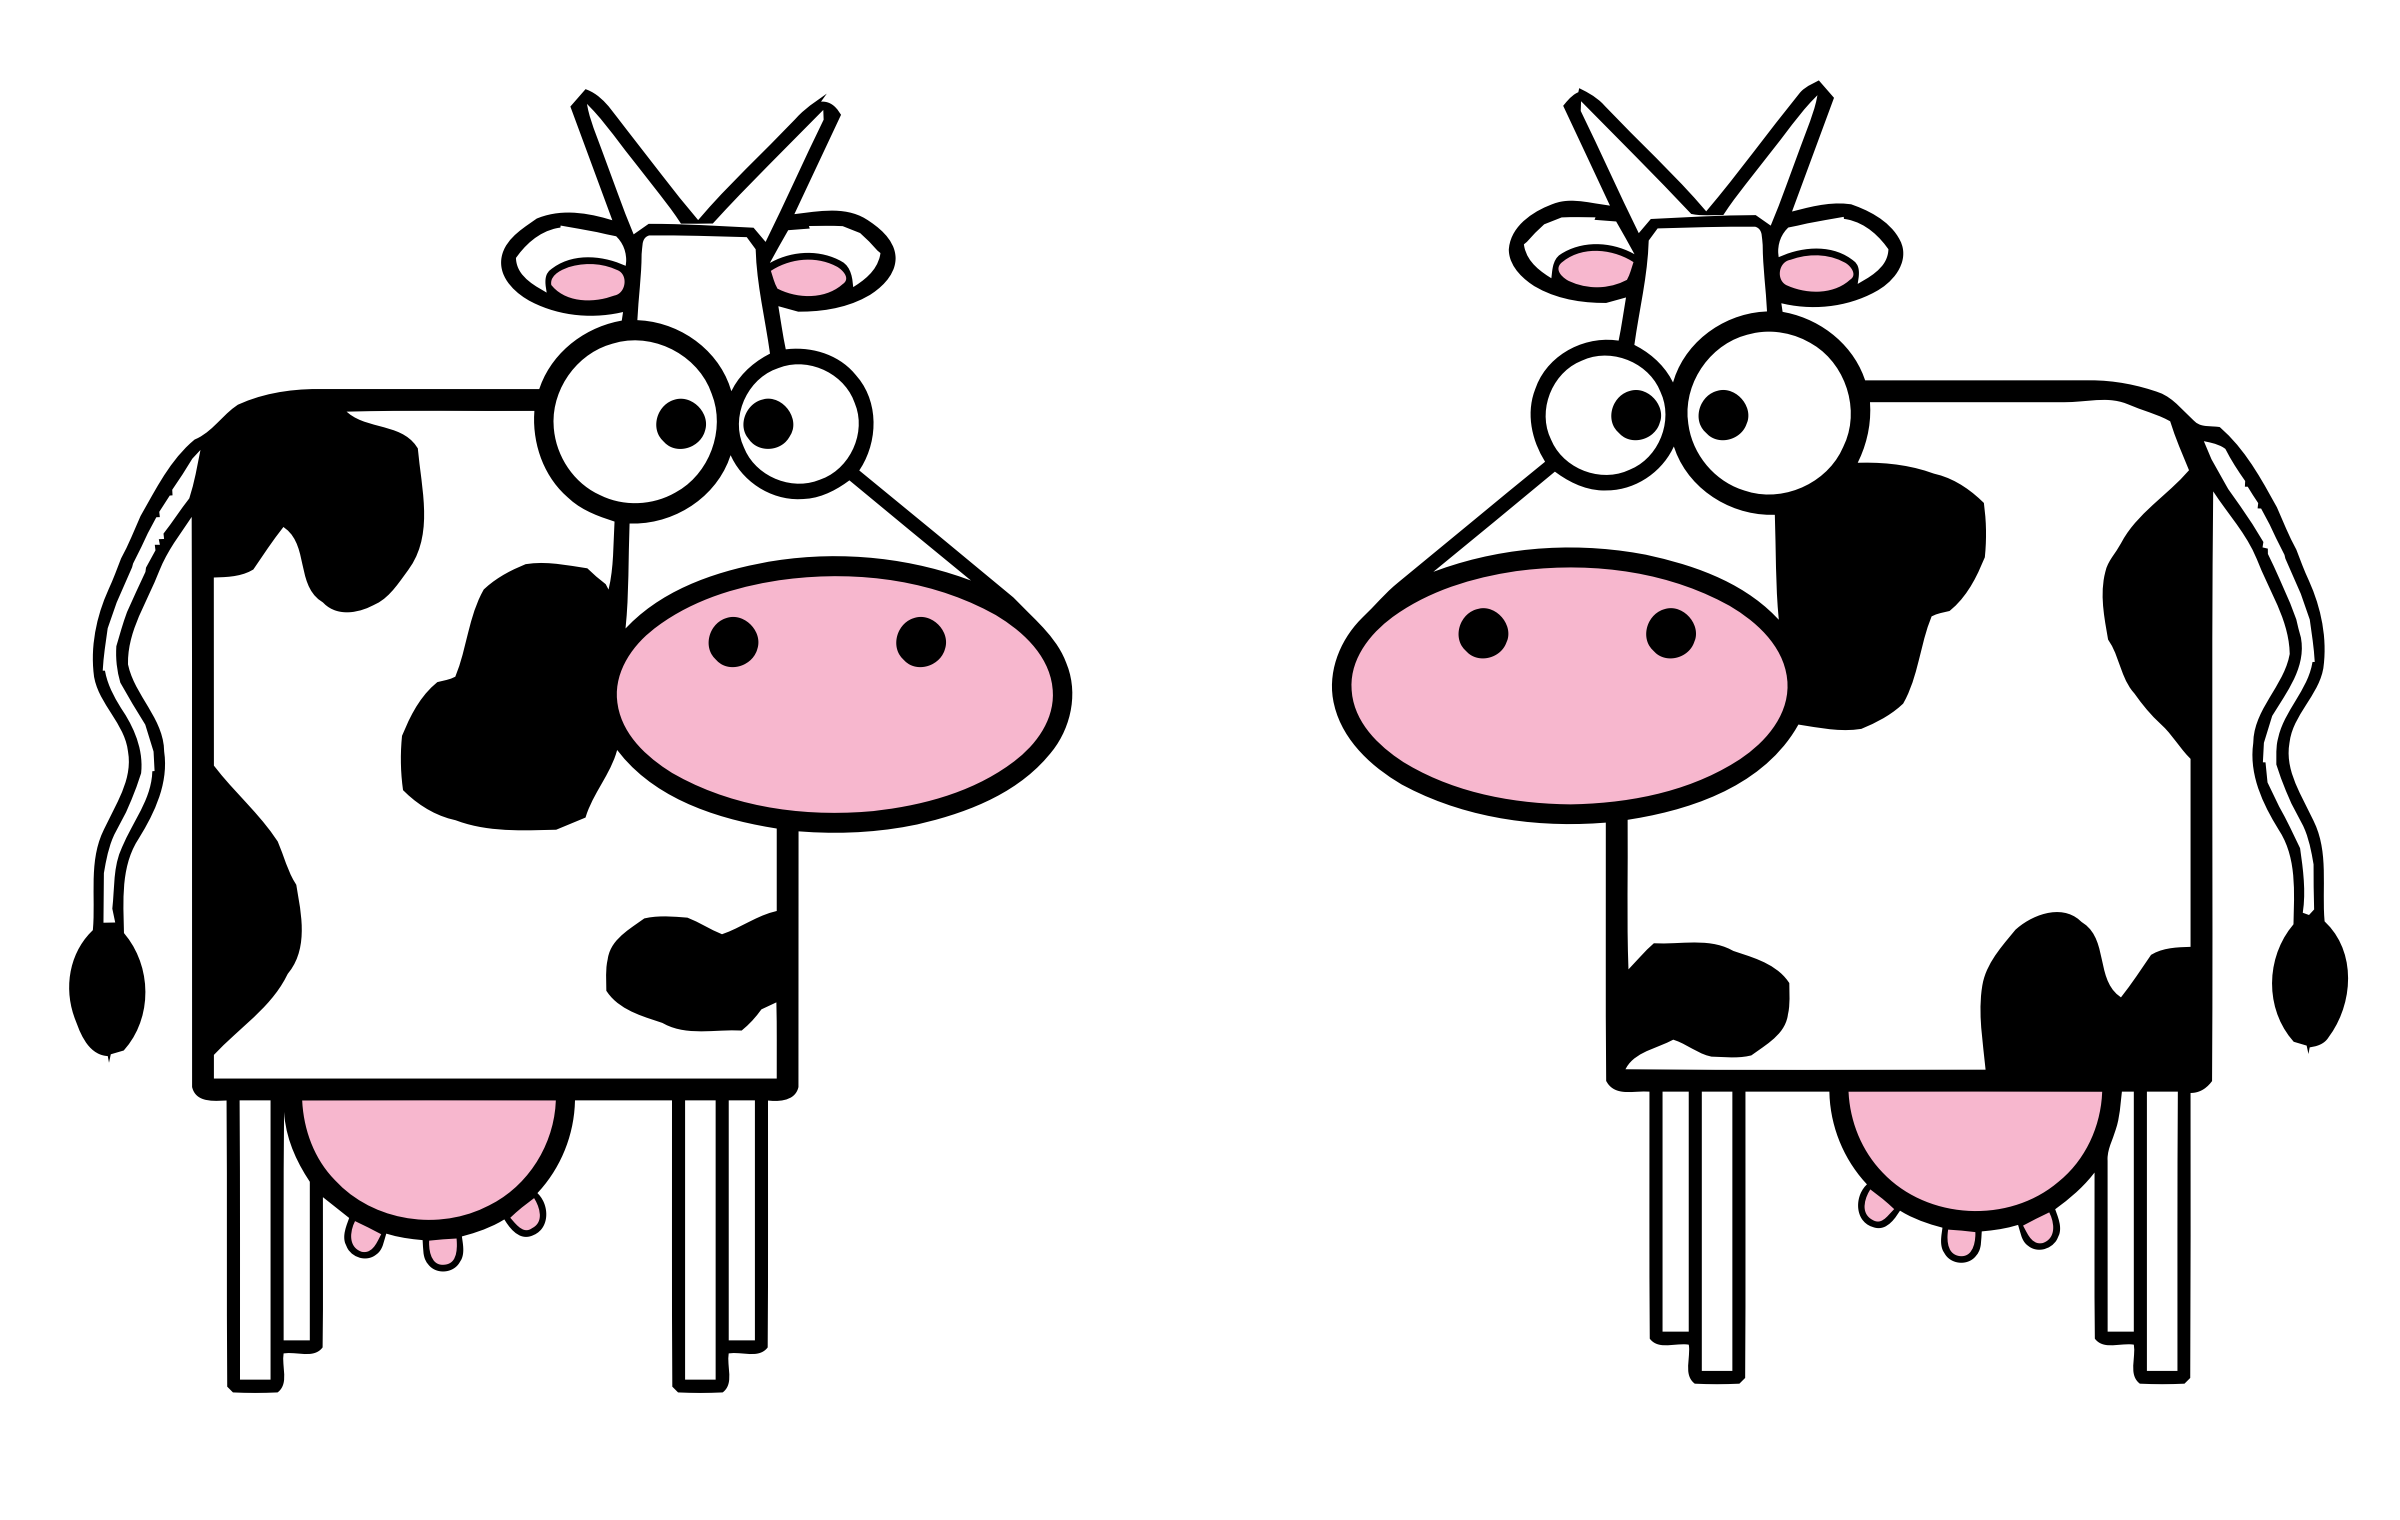 Two Cartoon Cows vector clipart image - Free stock photo ...